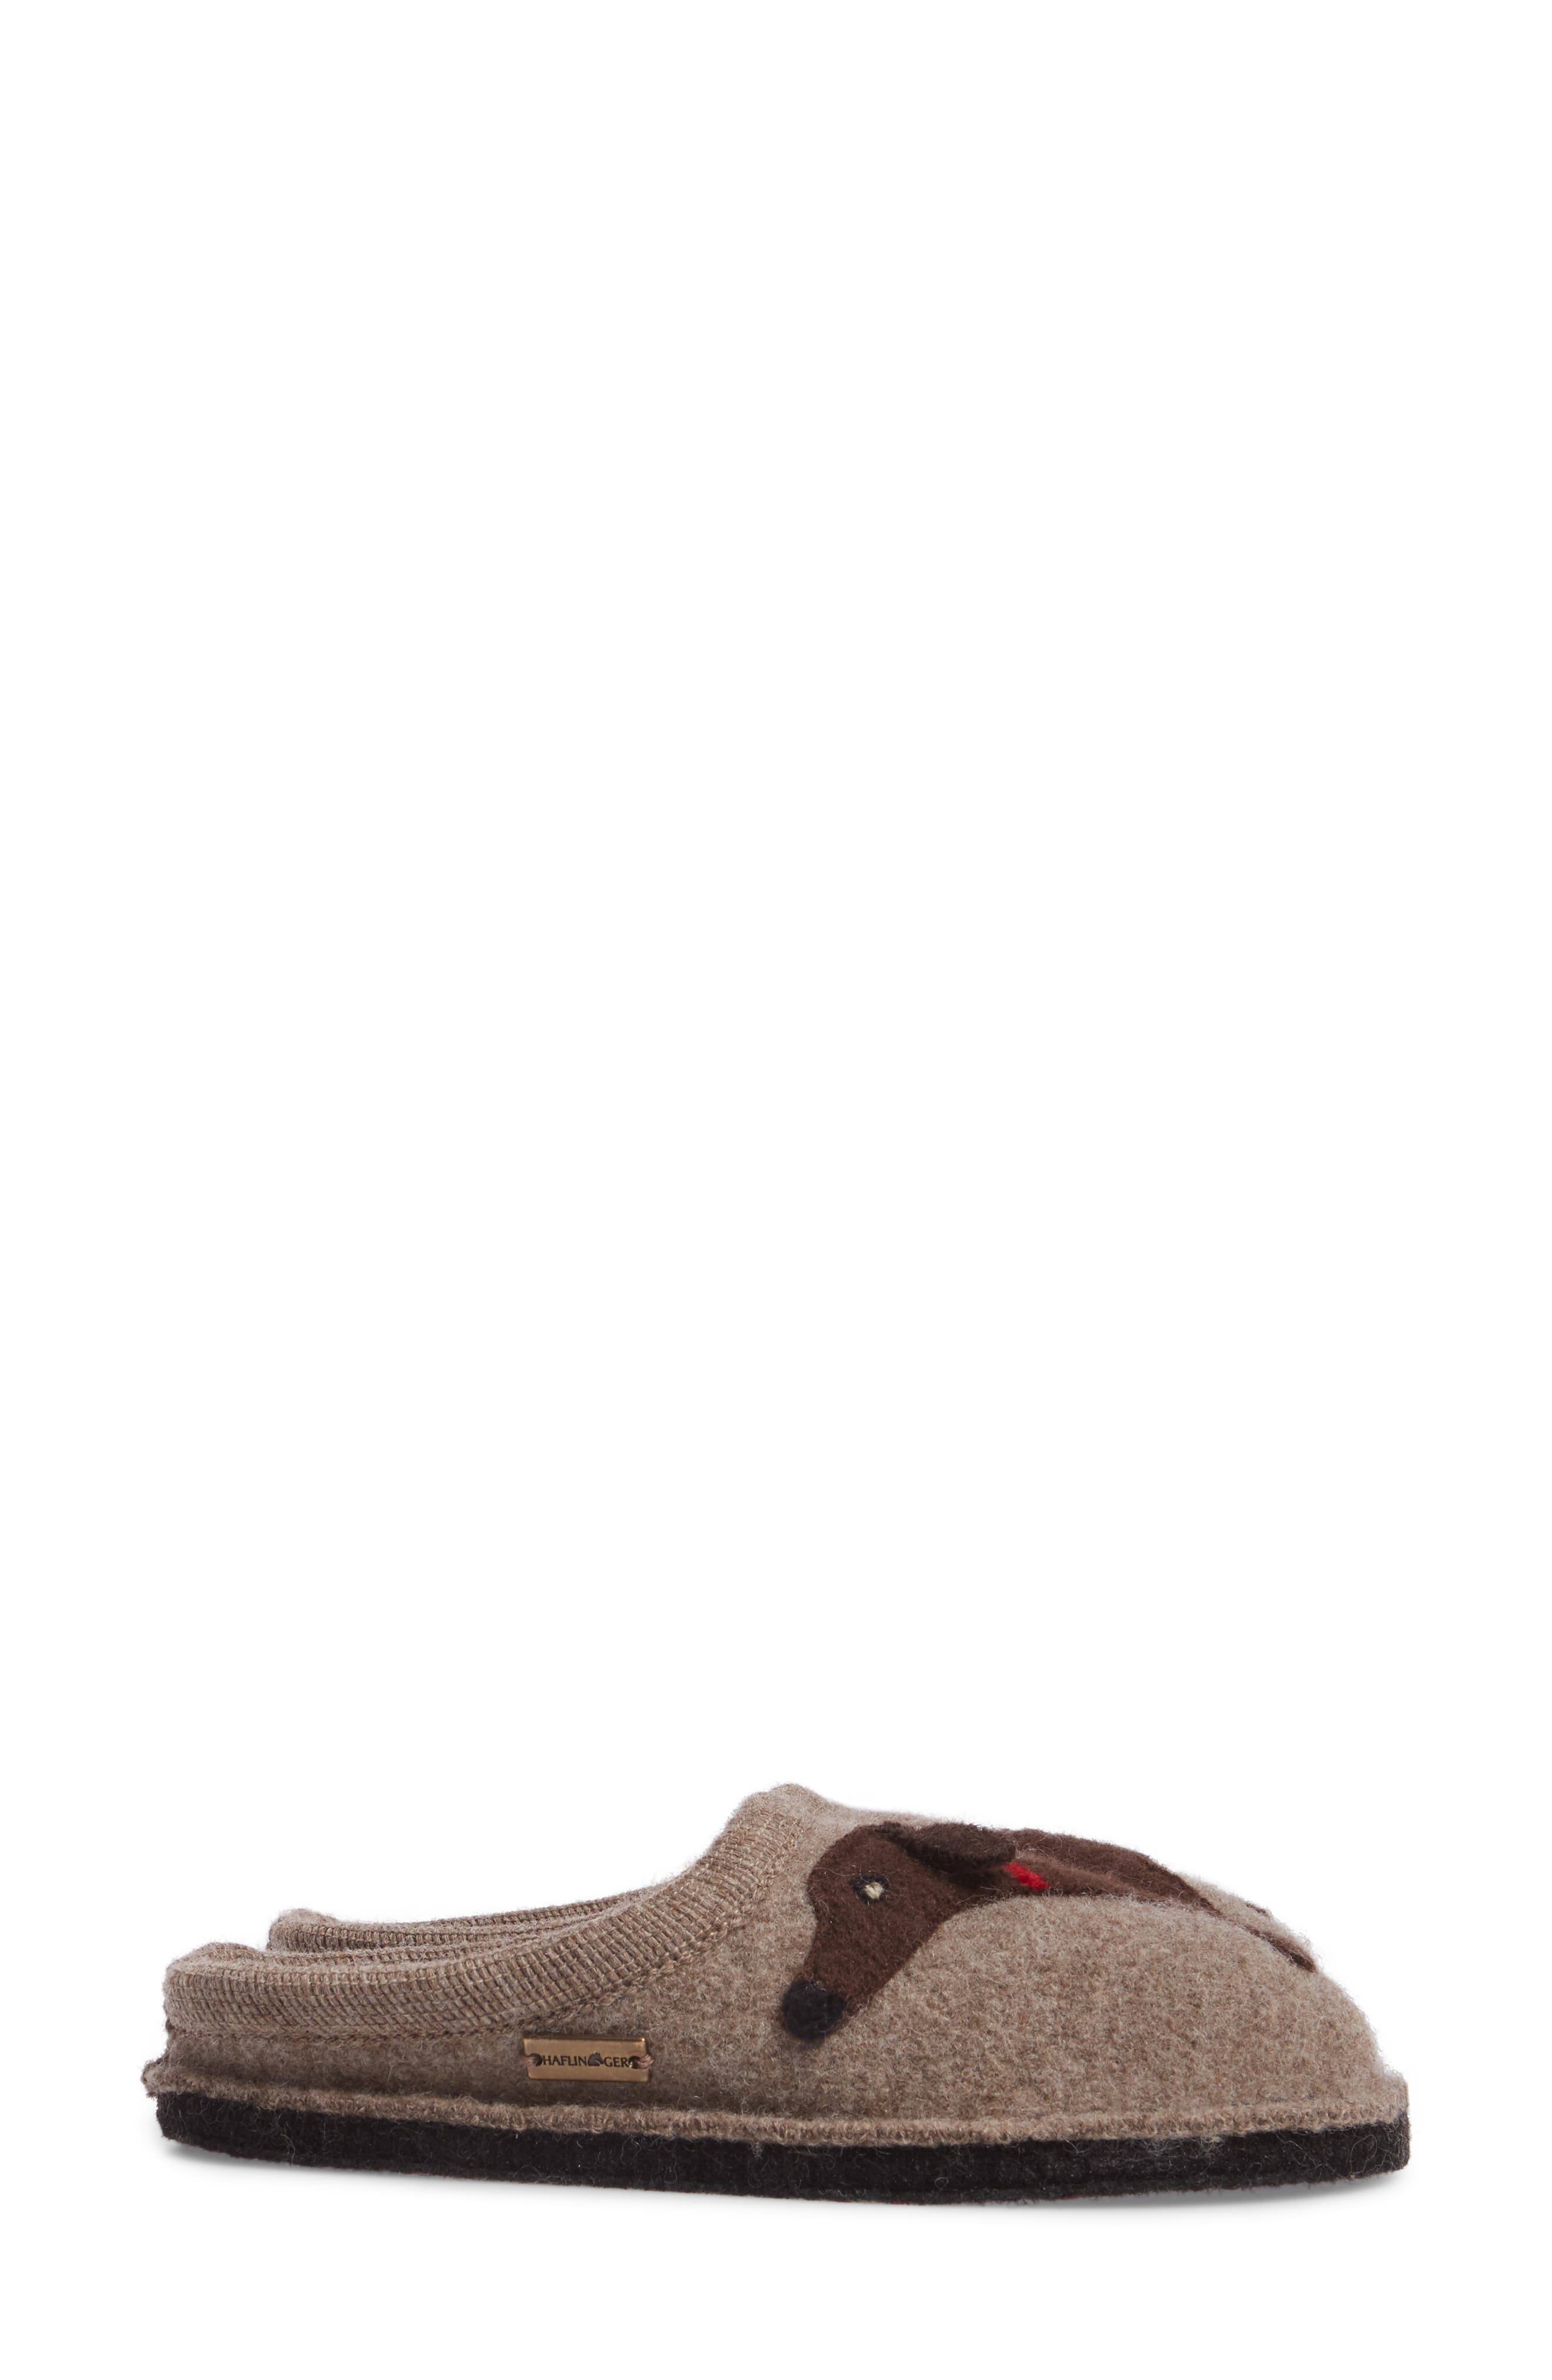 'Doggy' Slipper,                             Alternate thumbnail 5, color,                             EARTH